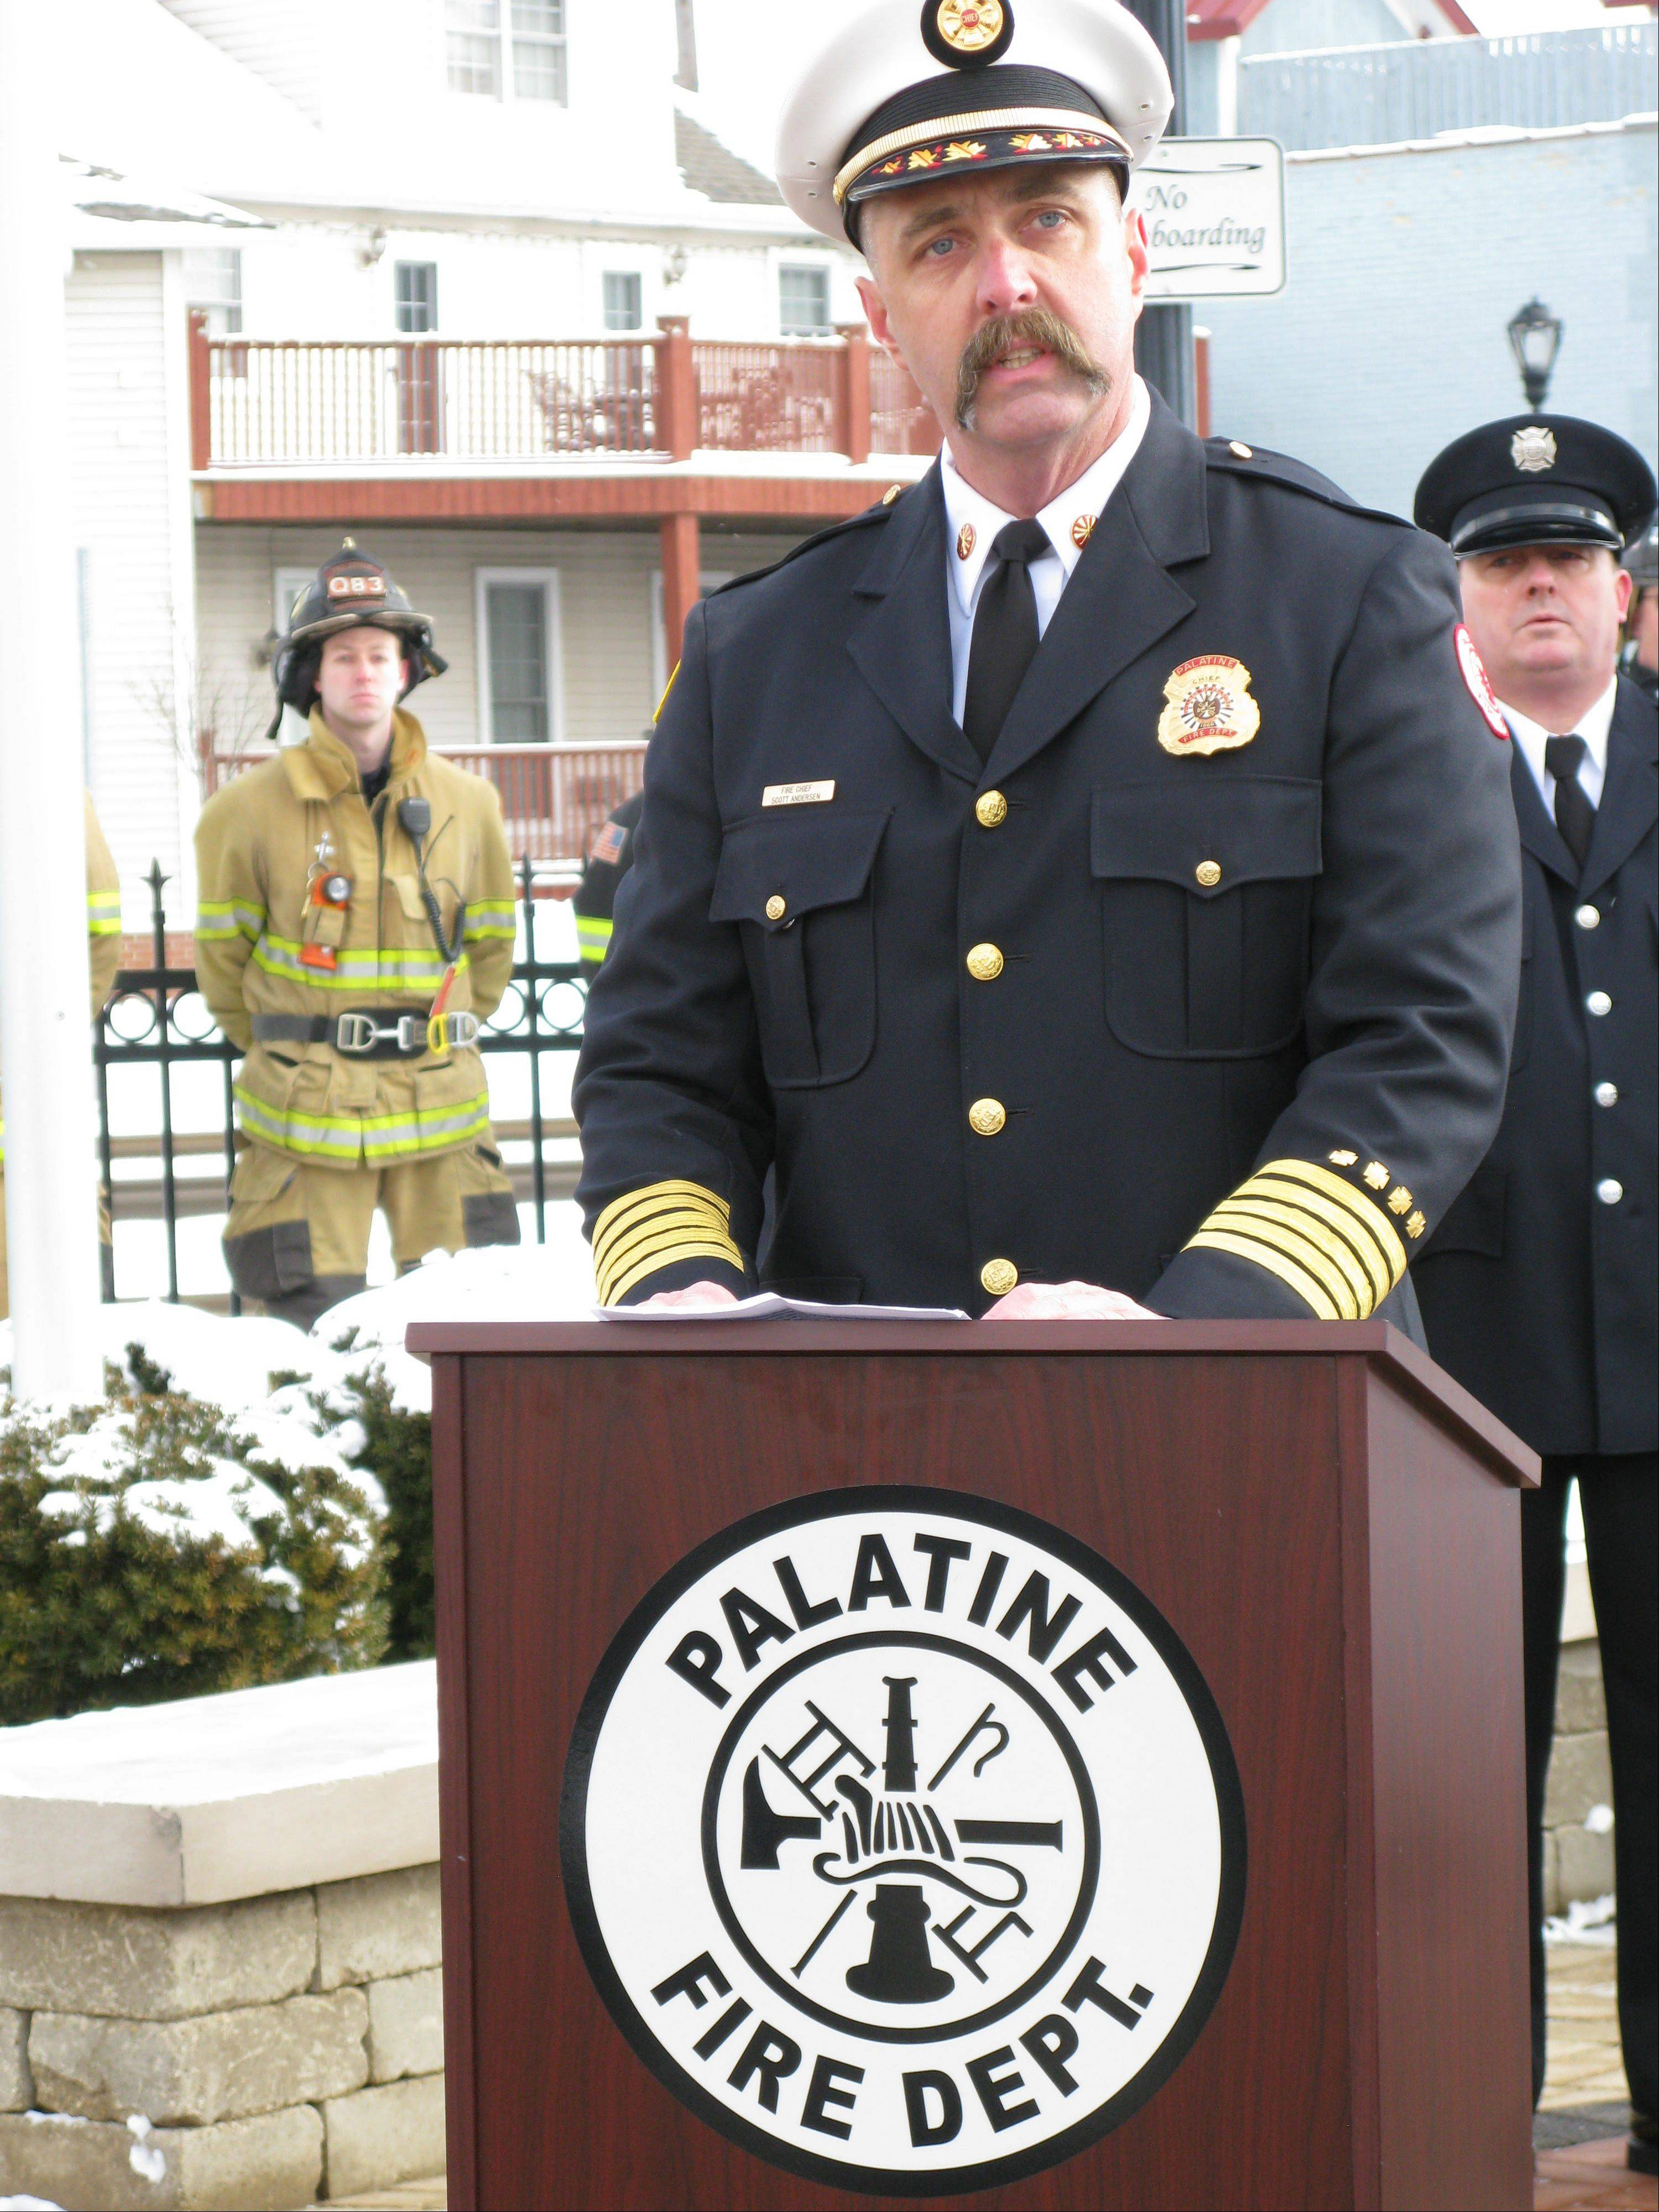 Palatine Fire Chief Scott Andersen talks about the ultimate sacrifice given by three fallen volunteer firefighters, John Wilson, Richard Freeman and Warren Ahlgrim, who perished during a fire rescue on Feb. 23, 1973. Roughly 200 people, including firefighters from several suburban departments, attended a ceremony Saturday at the Firefighters Memorial in downtown Palatine to honor their memory and commemorate the 40th anniversary of their deaths.